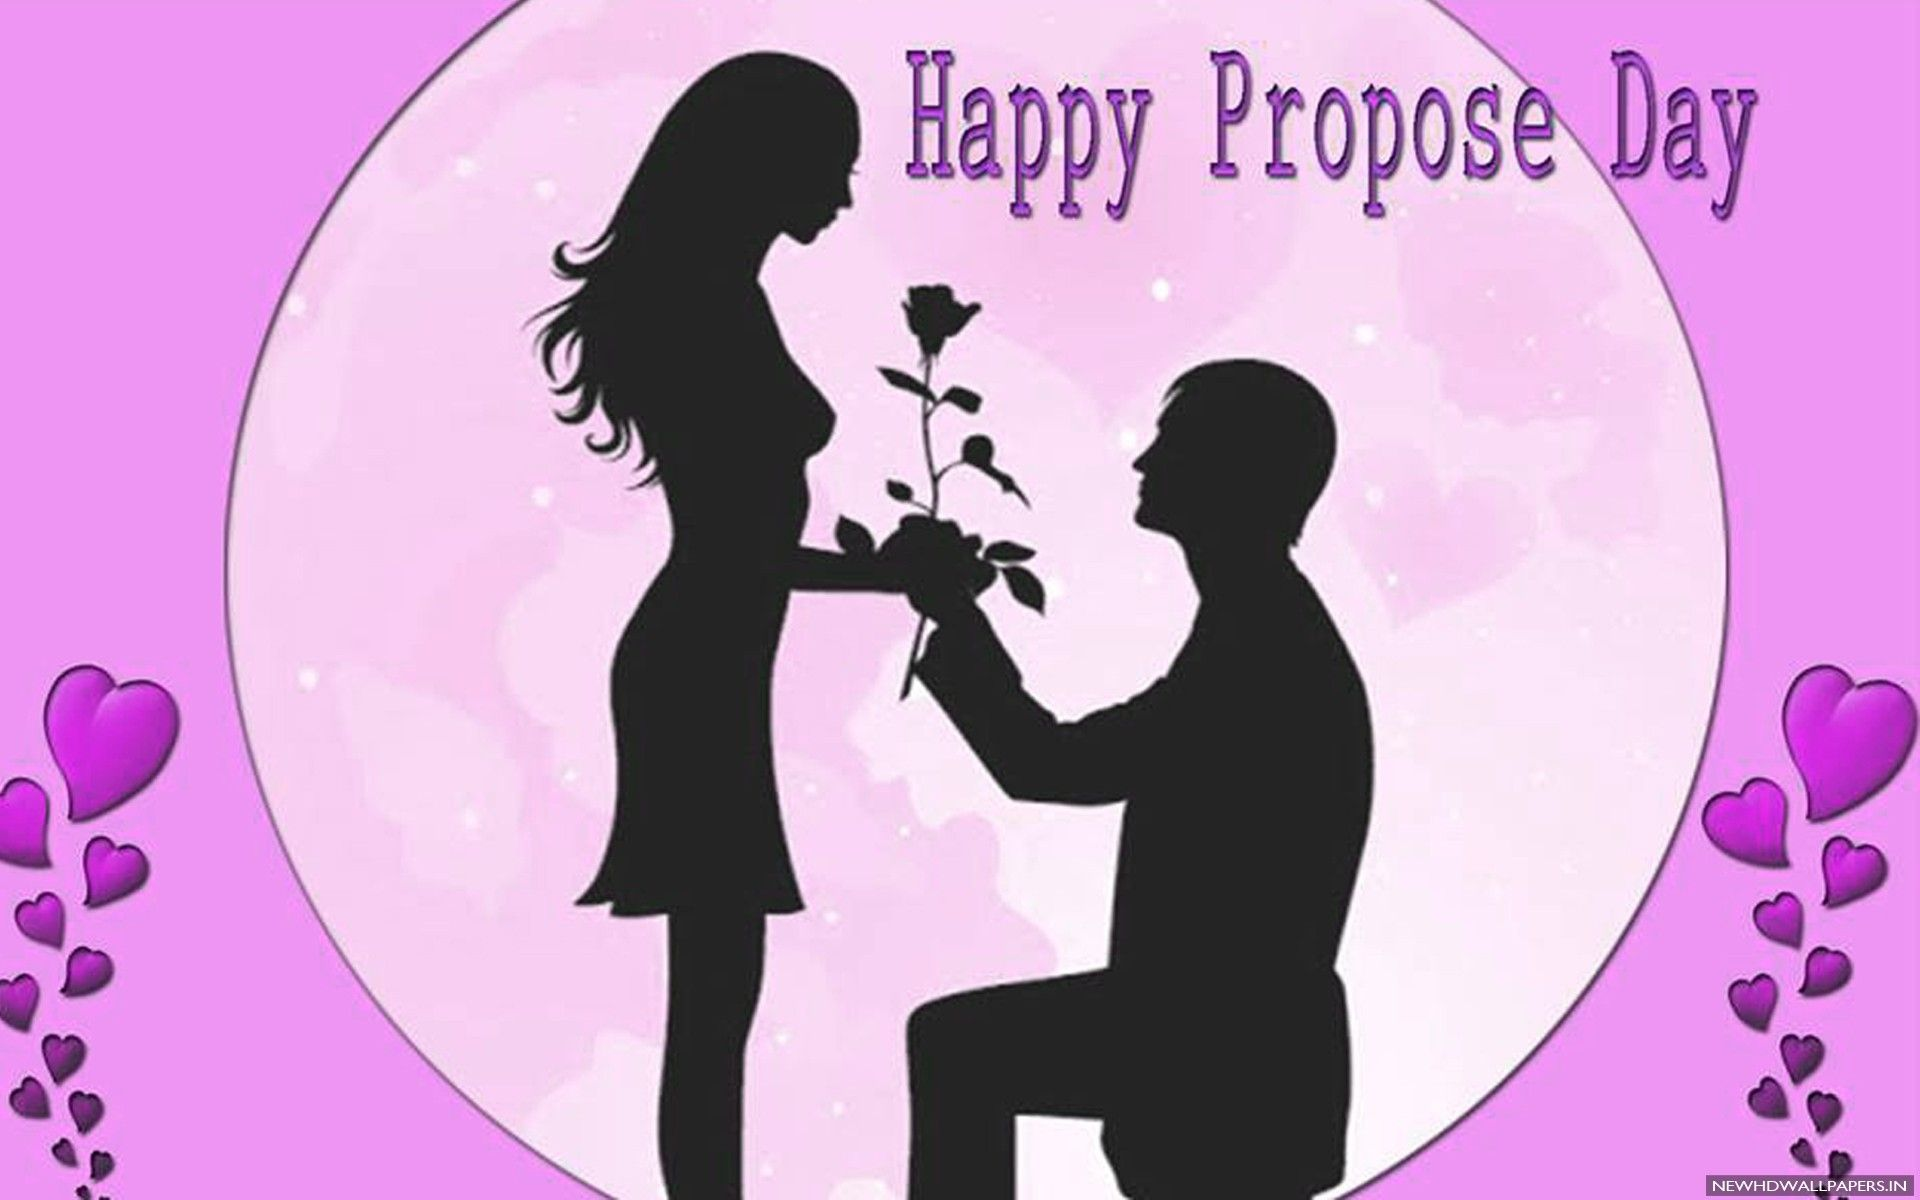 Happy Propose Day 2015 Latest Image Wallpapers